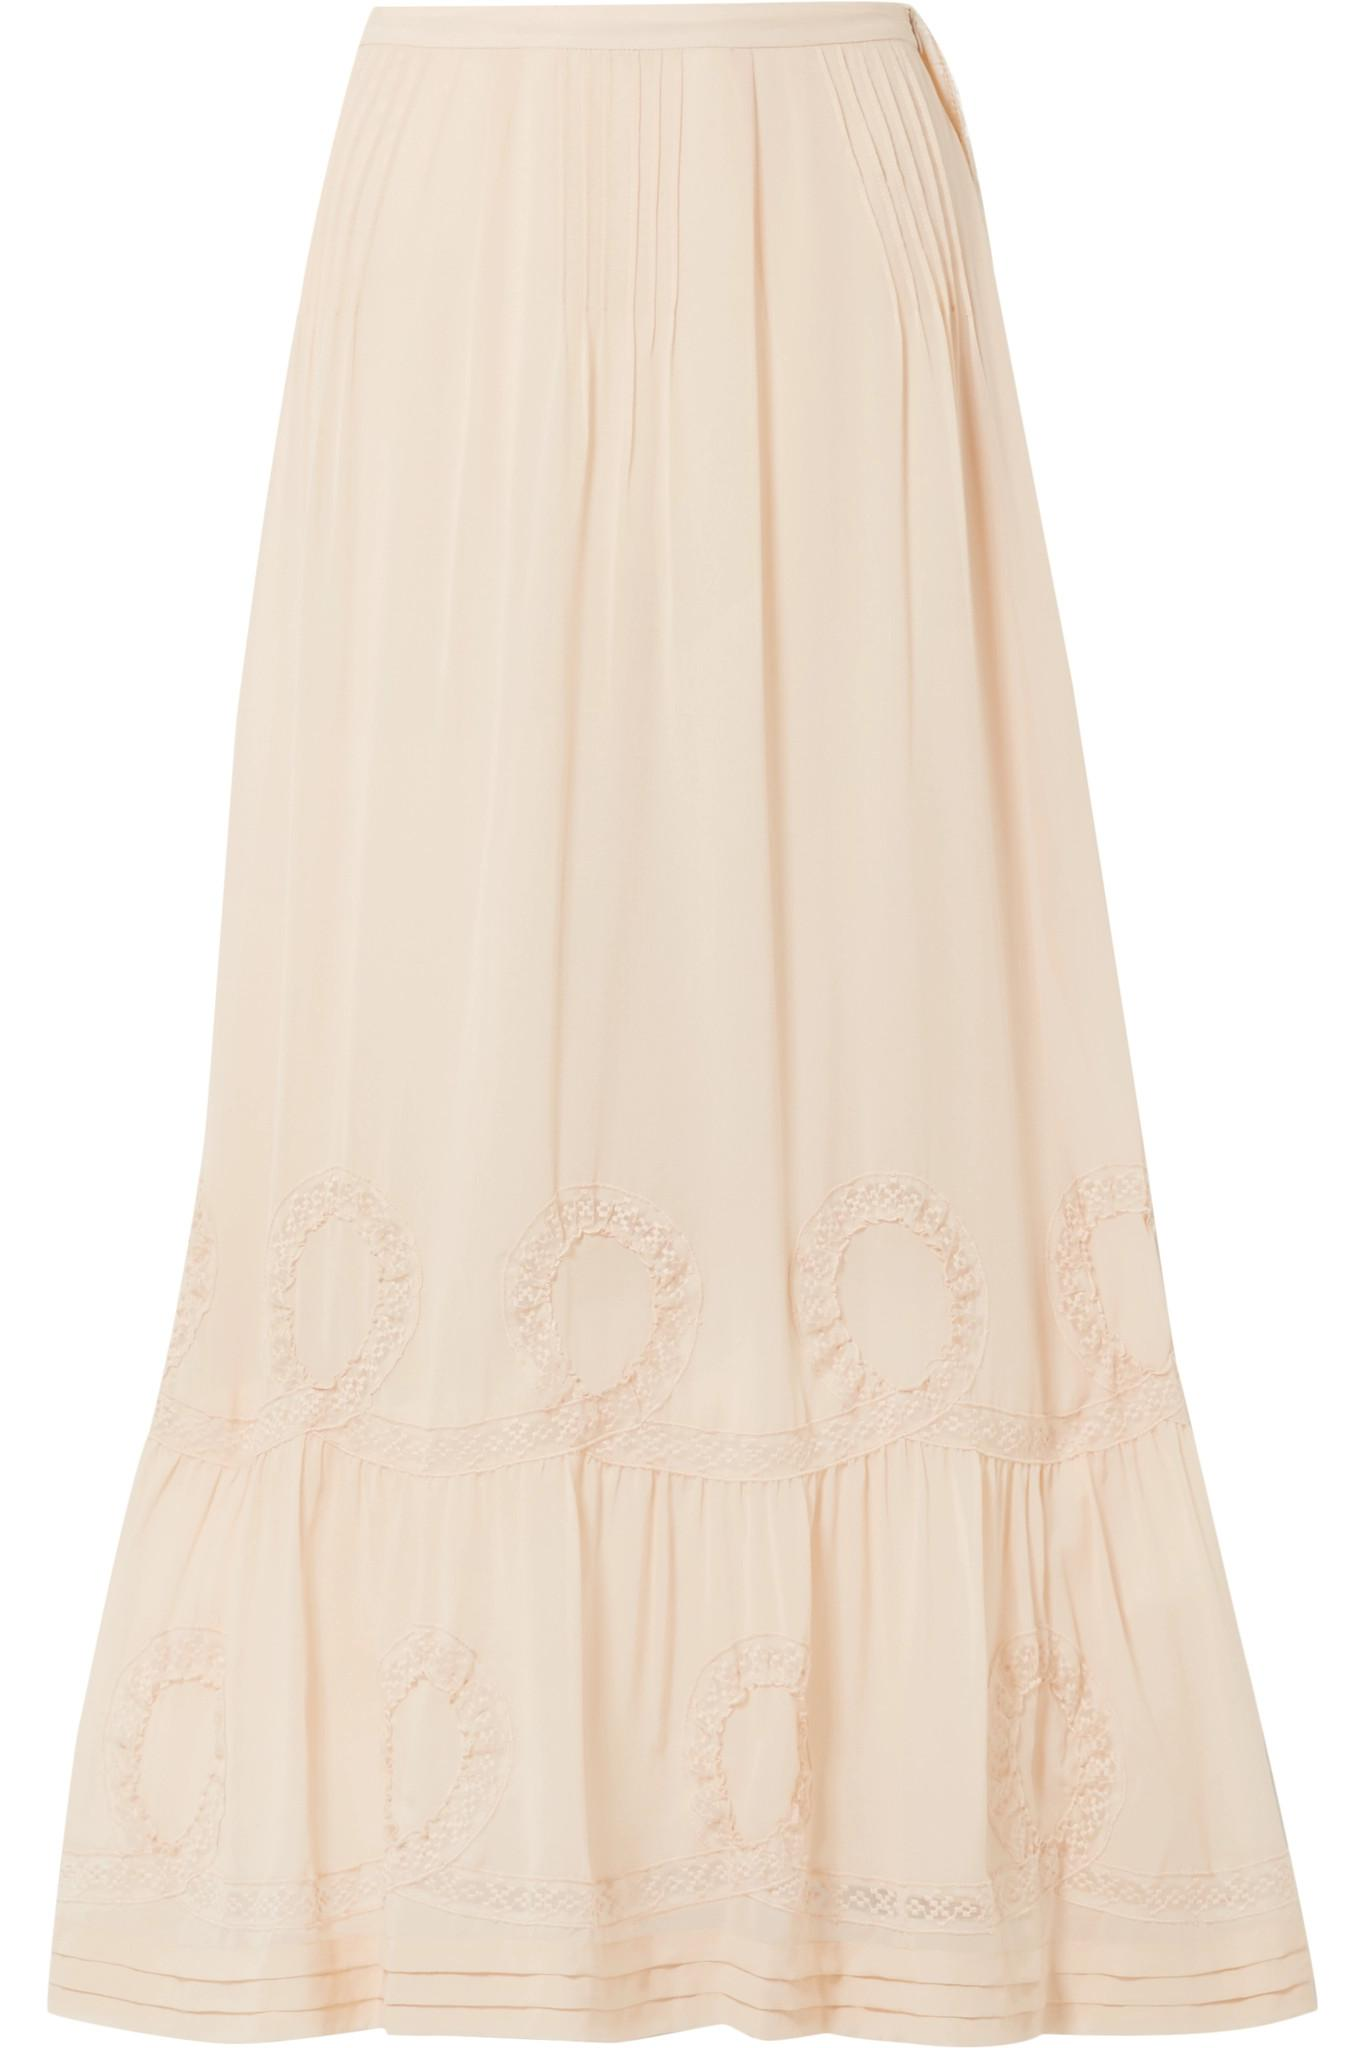 6c89a4a42d LoveShackFancy Hillary Embroidered Silk-georgette Maxi Skirt in ...